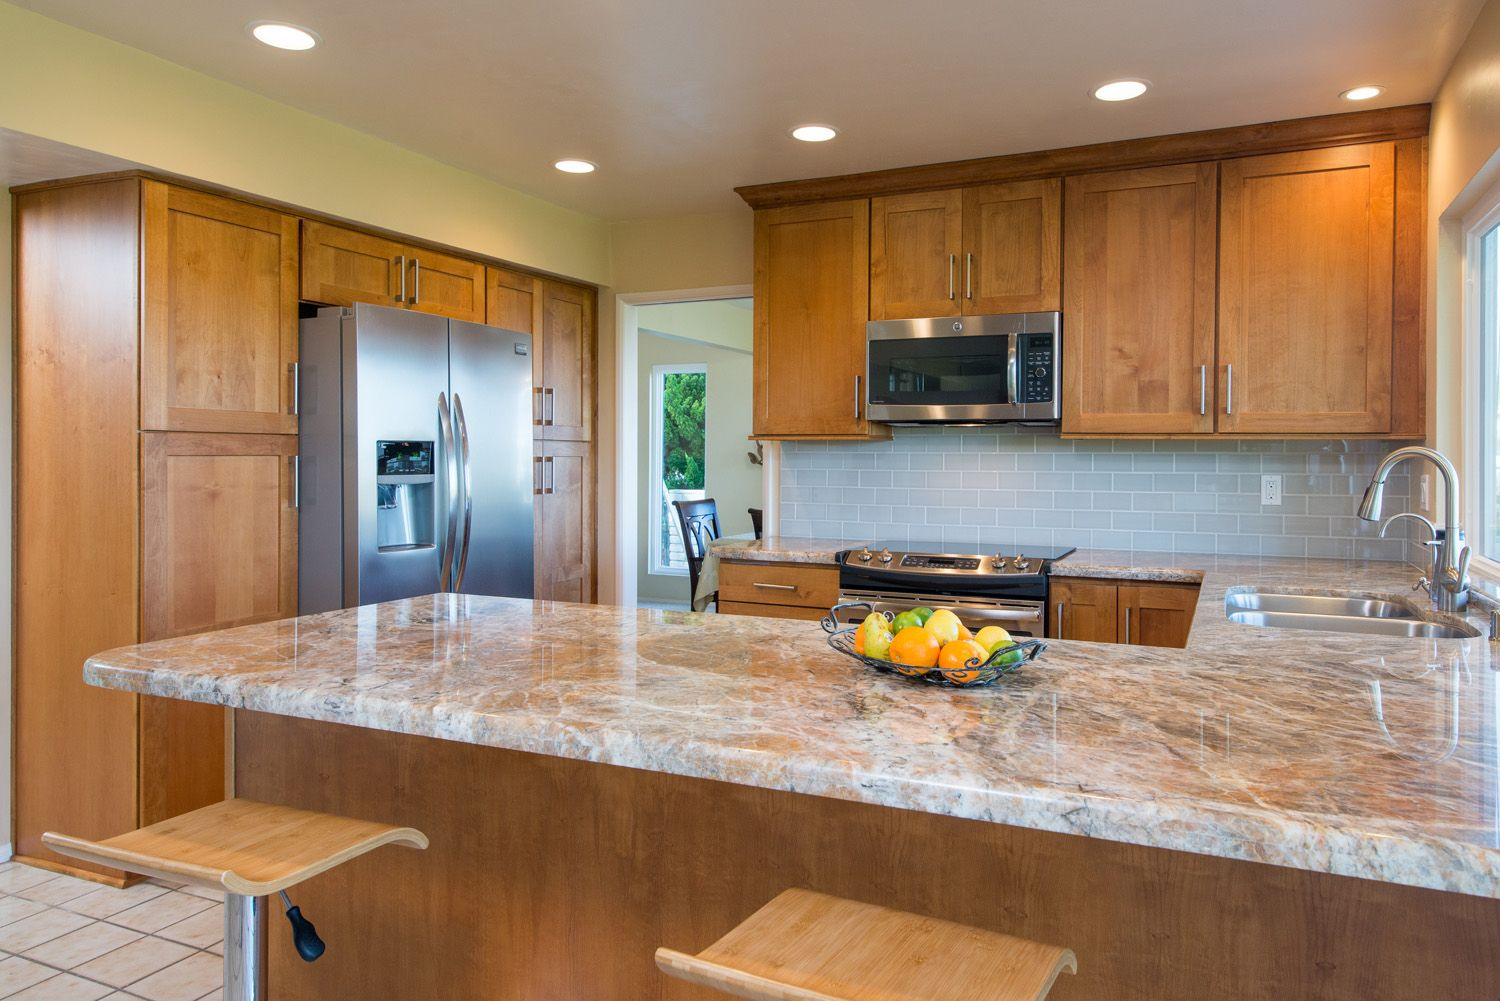 A Kitchen Remodel In Solona Beach California Resulted In The Iconic California Look Fresh And Simple Brown Kitchen Cabinets Brown Kitchens Kitchen Remodel